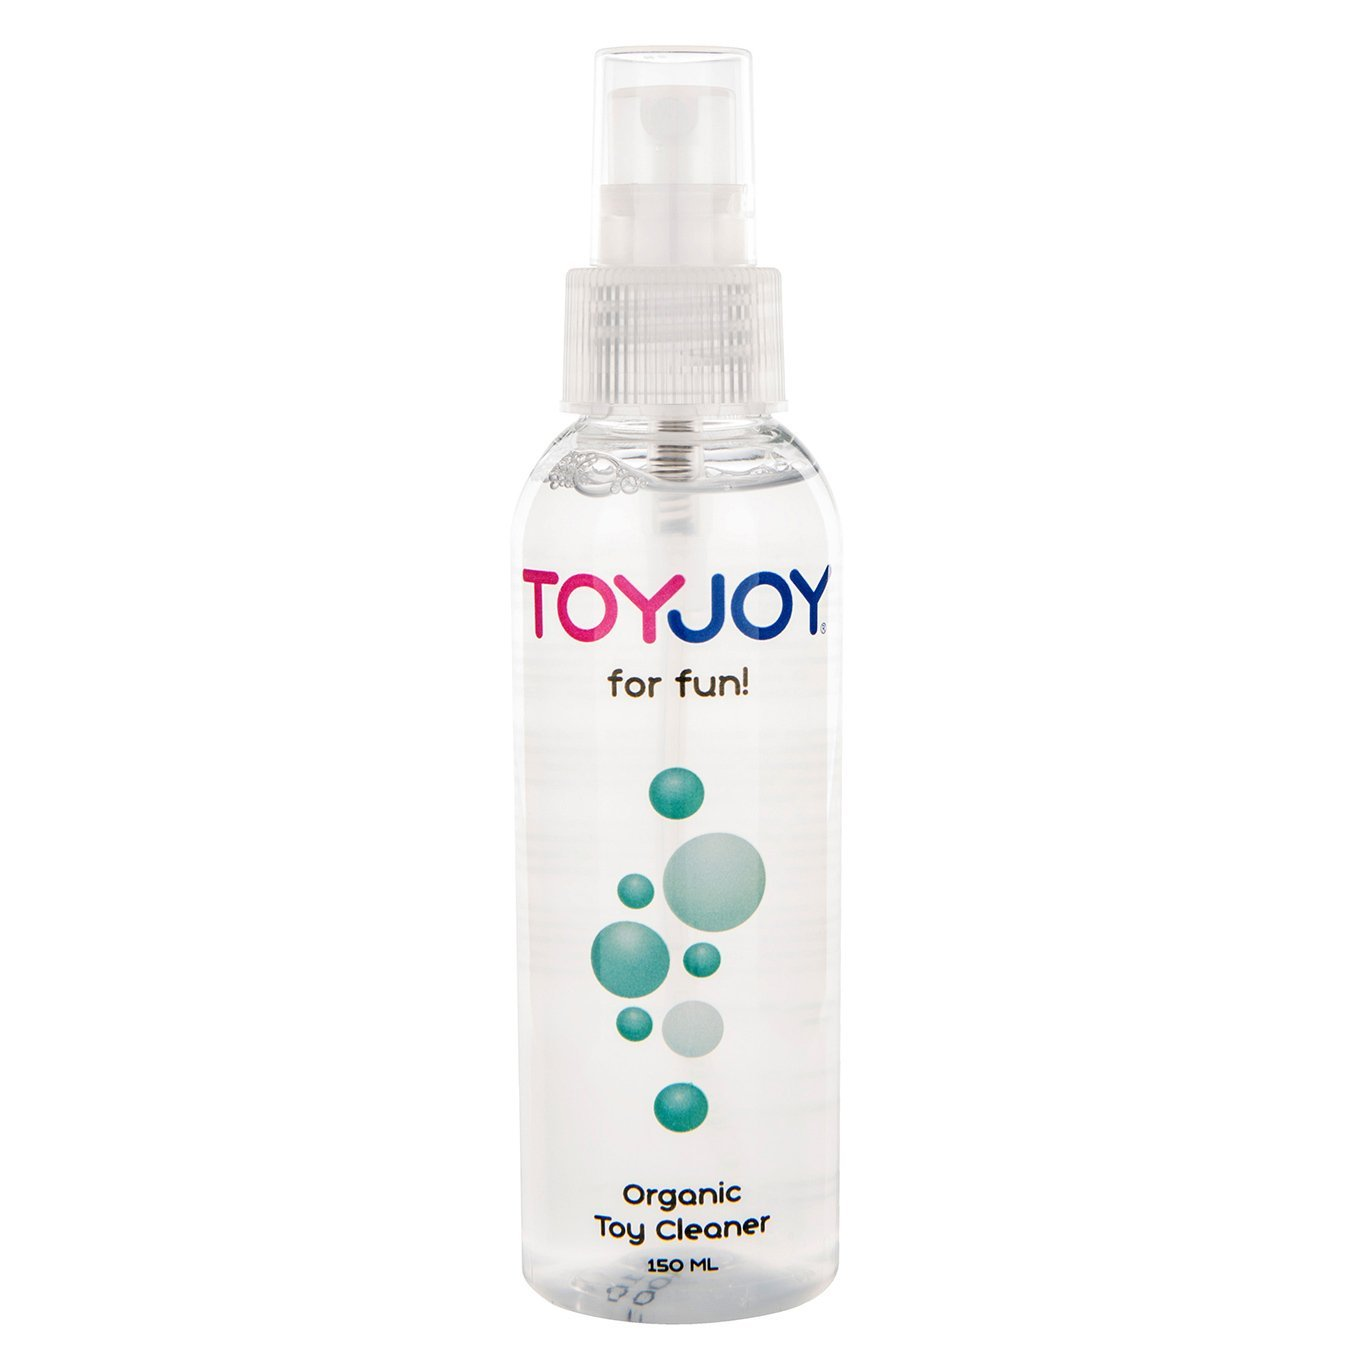 ToyJoy - Organic Toy Cleaner Spray 150 ml Toy Cleaners Singapore